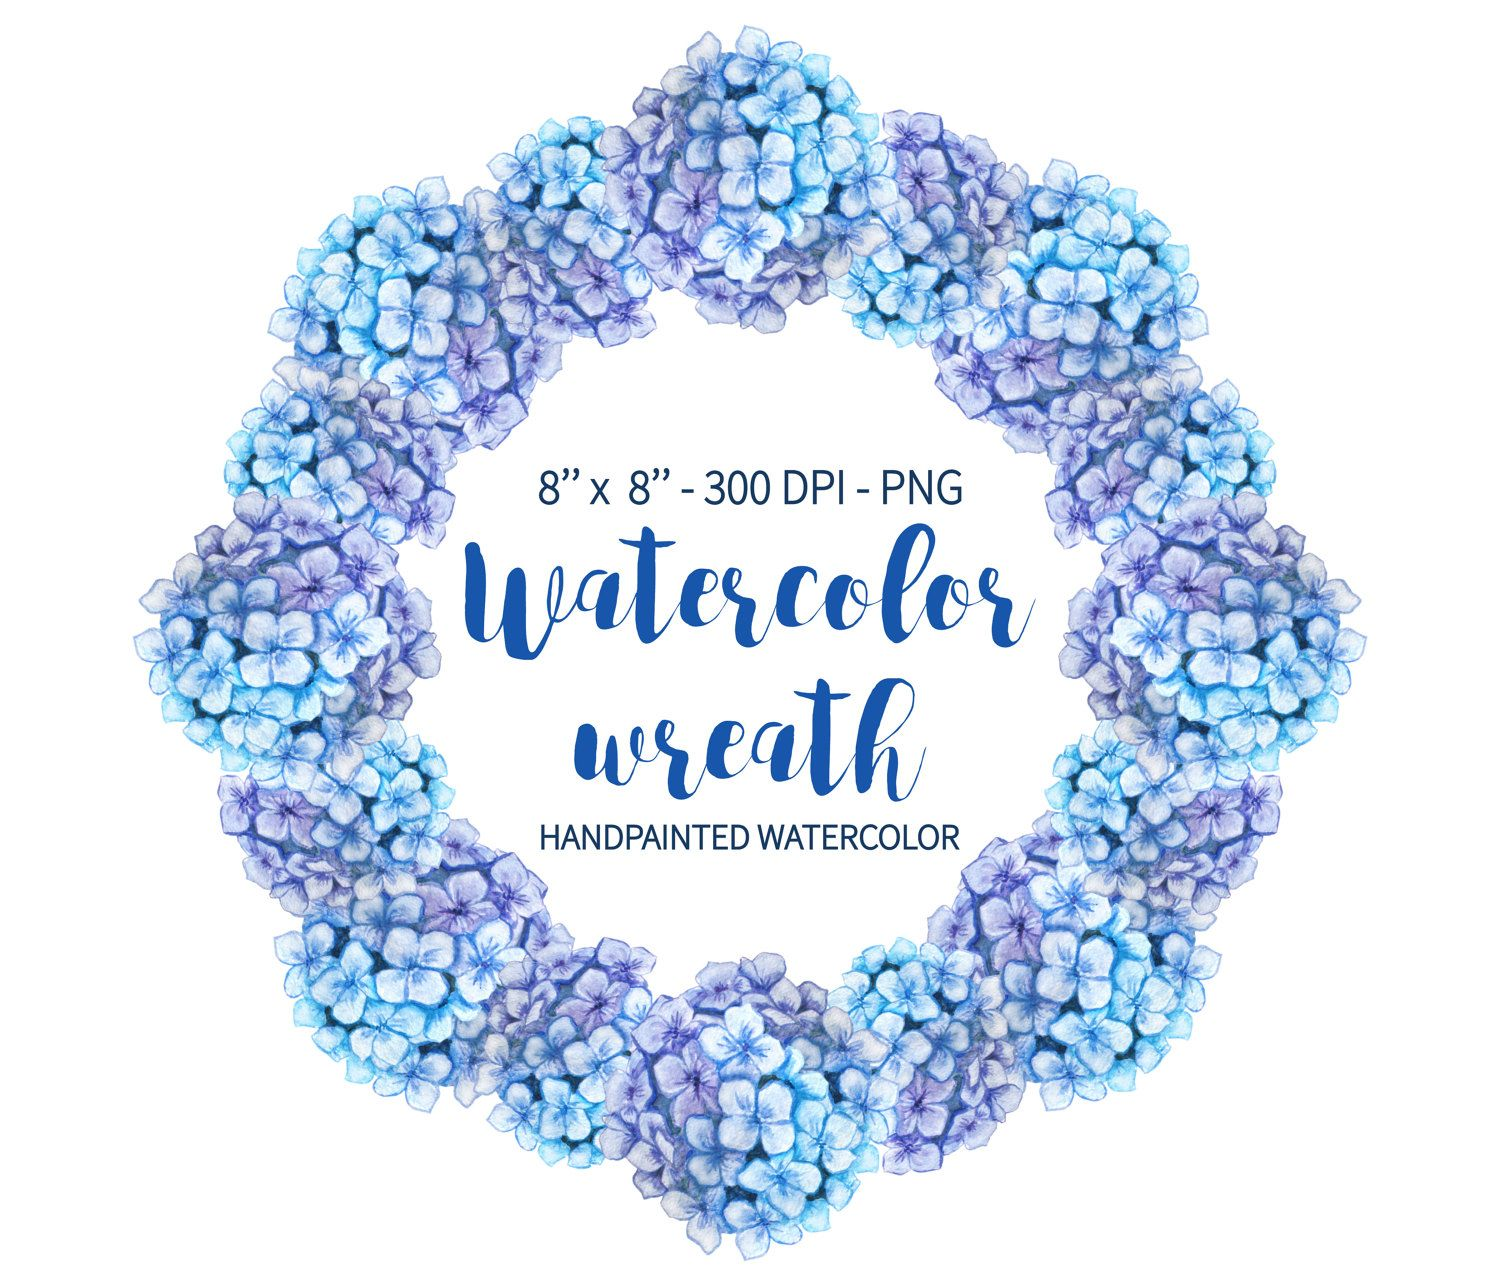 Hydrangea clipart wreath clipart blue hydrangea watercolor wreath hydrangea clipart wreath clipart blue hydrangea watercolor wreath floral clipart hydrangea wreath blue wreath floral clip art png izmirmasajfo Gallery